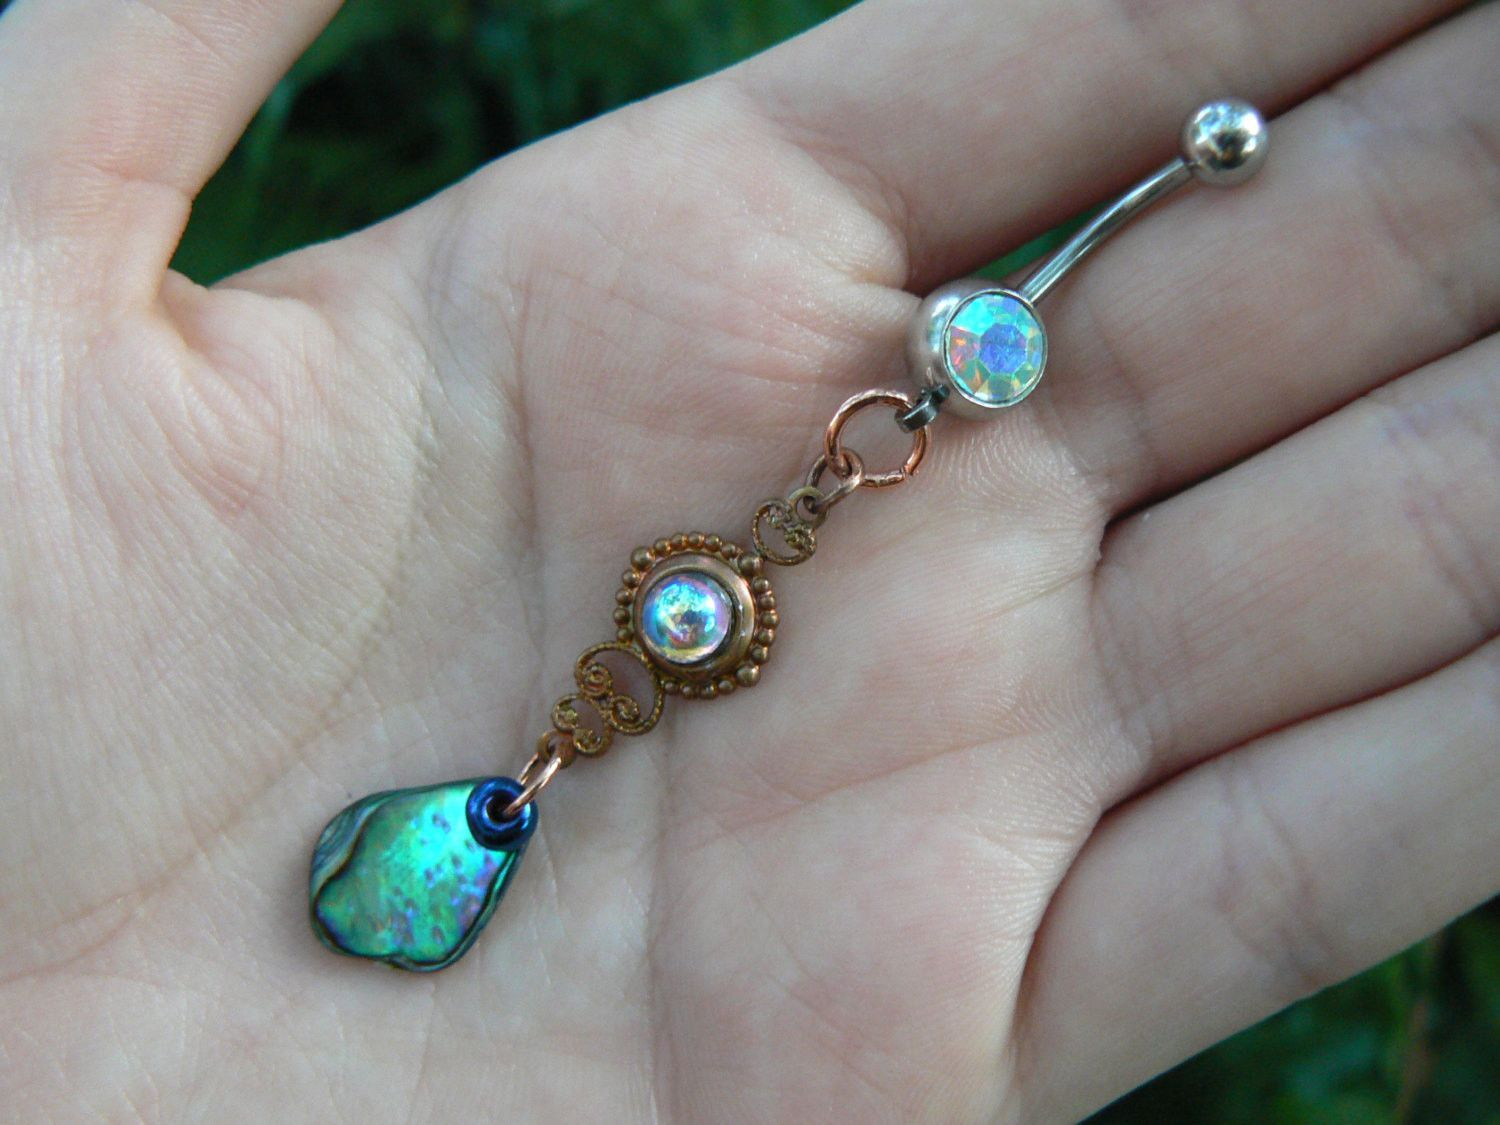 gypsy belly button rings,boho belly ring,belly button jewelry,navel ring,friendship gift